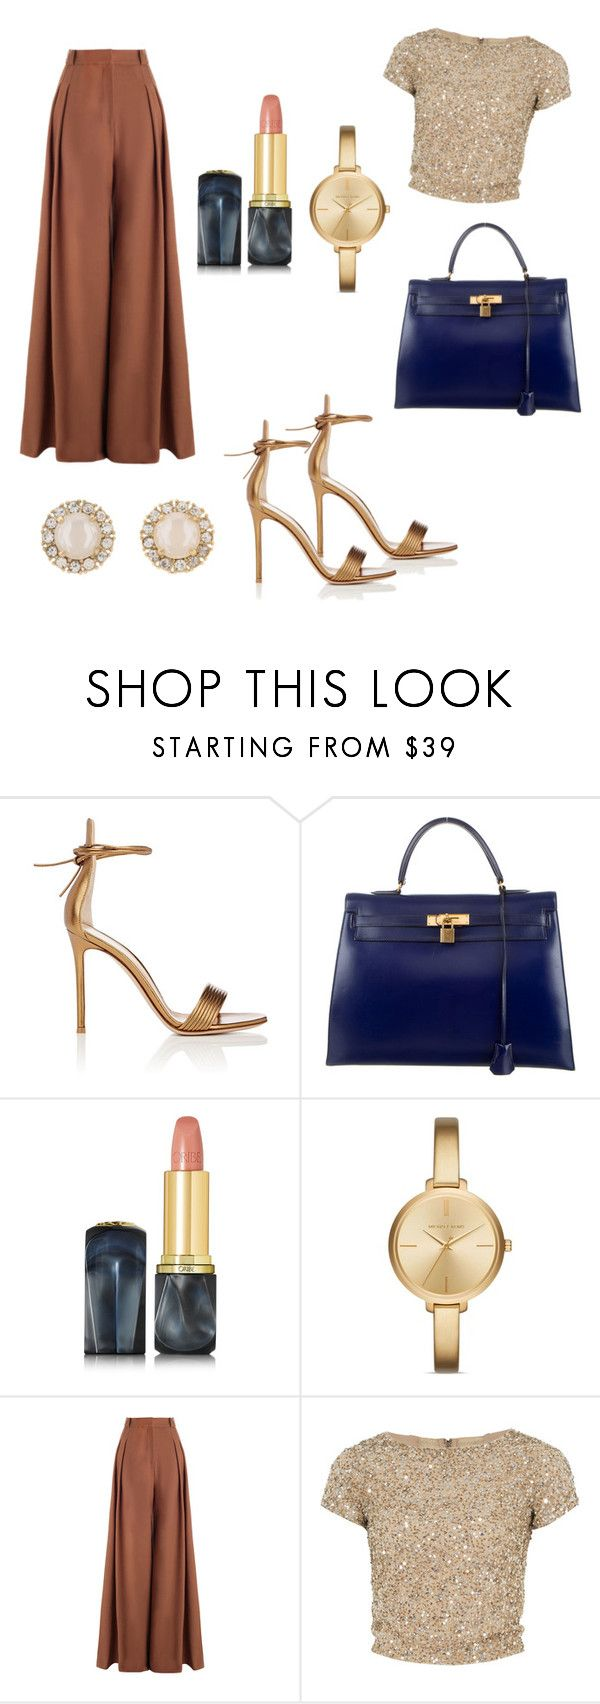 """""""Elegant evening Look"""" by hanakalesic ❤ liked on Polyvore featuring Gianvito Rossi, Hermès, Oribe, Michael Kors, Zimmermann, Alice + Olivia and Kate Spade"""